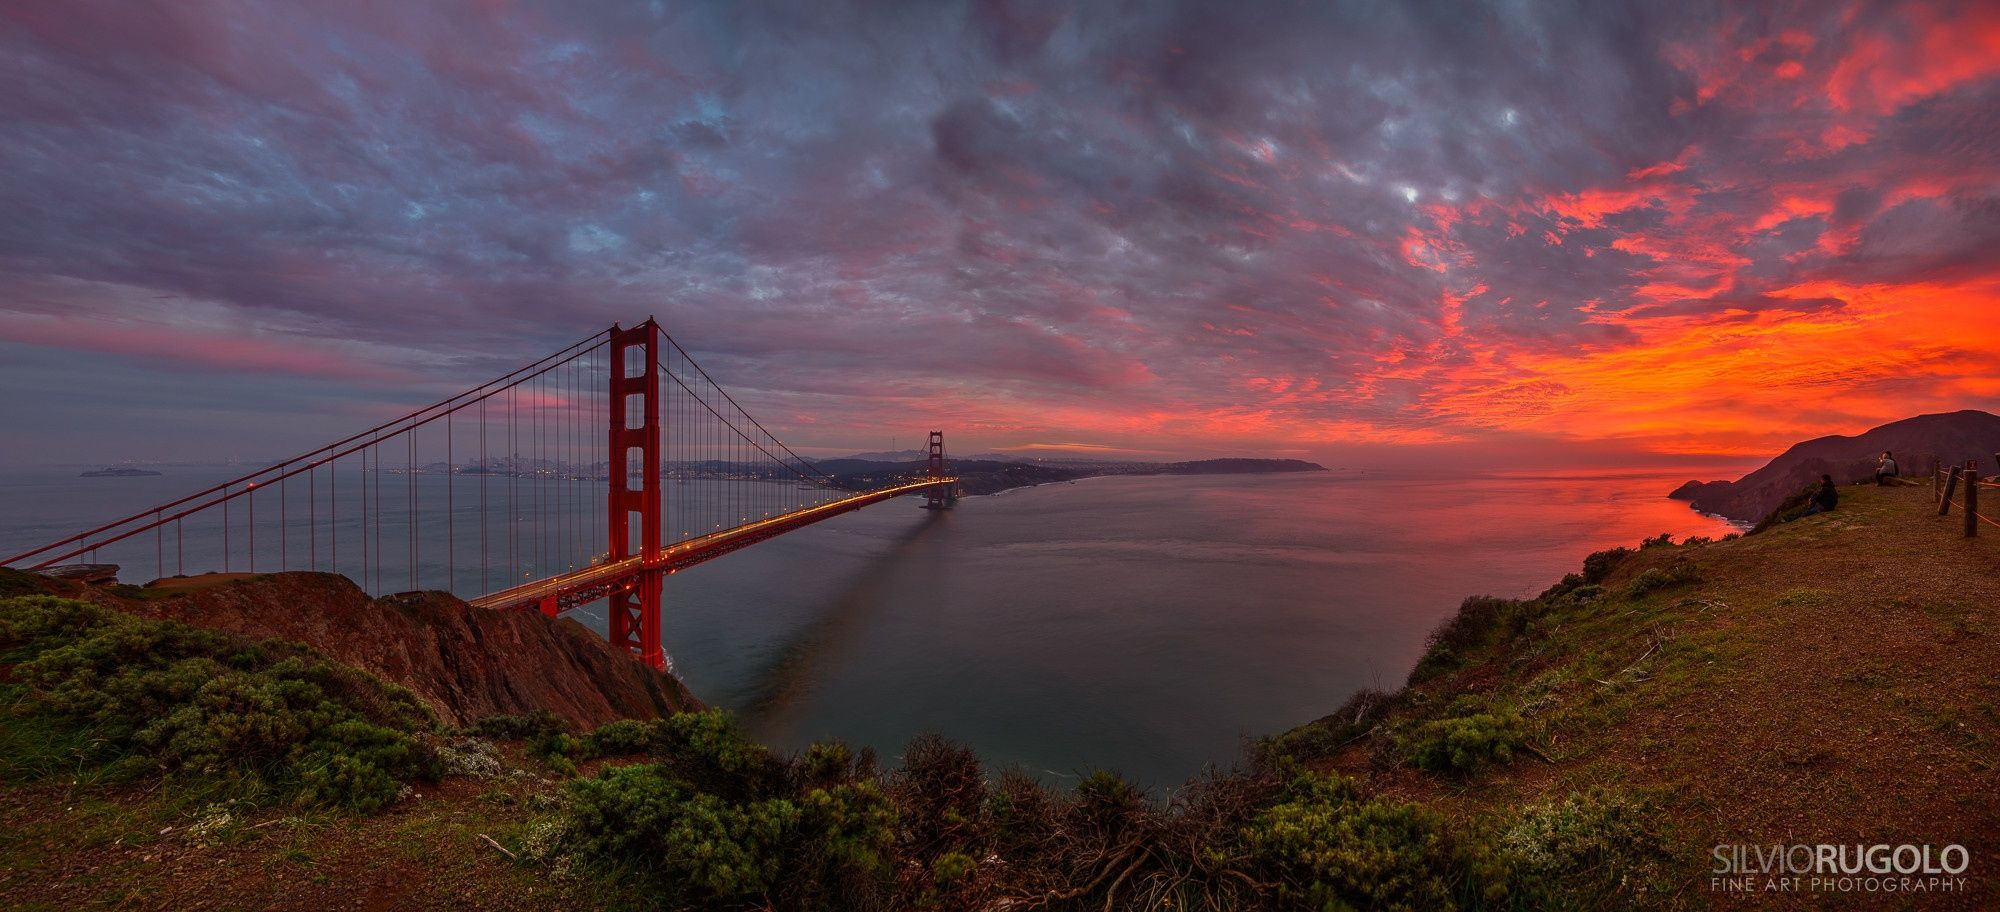 This is a 6 frames stitch 14.5k x 6.6k Pixels. I was so focused on shooting the bridge that I was almost missing what was happening on the right: something really rare which I tried to capture it with a panorama stitch. The tonal range of reds was almost impossible for the camera to capture.